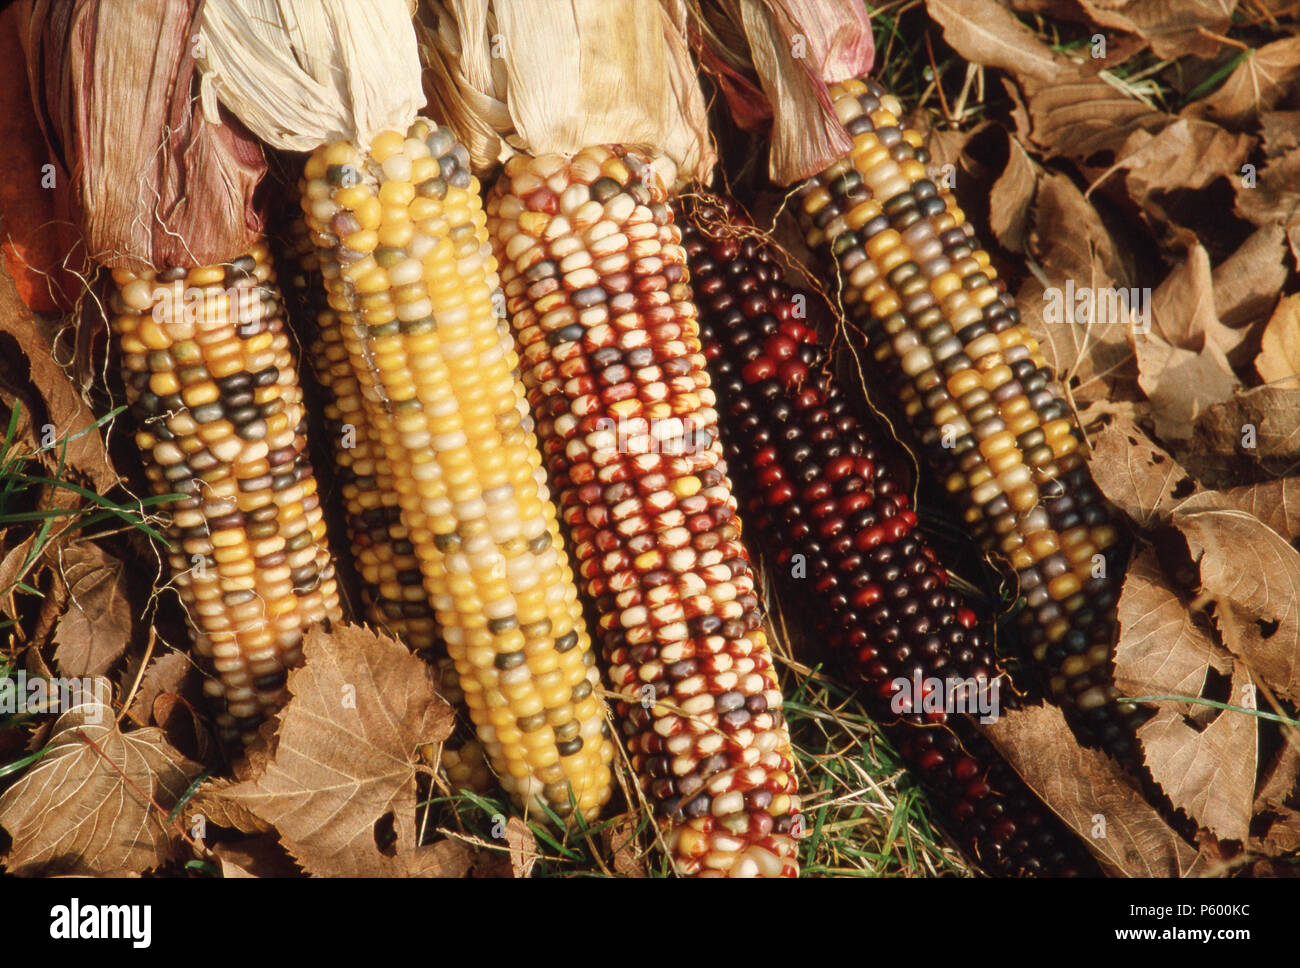 INDIAN CORN OF THE AMERICAS 30 Varieties of Maize Food Grain WALL POSTER